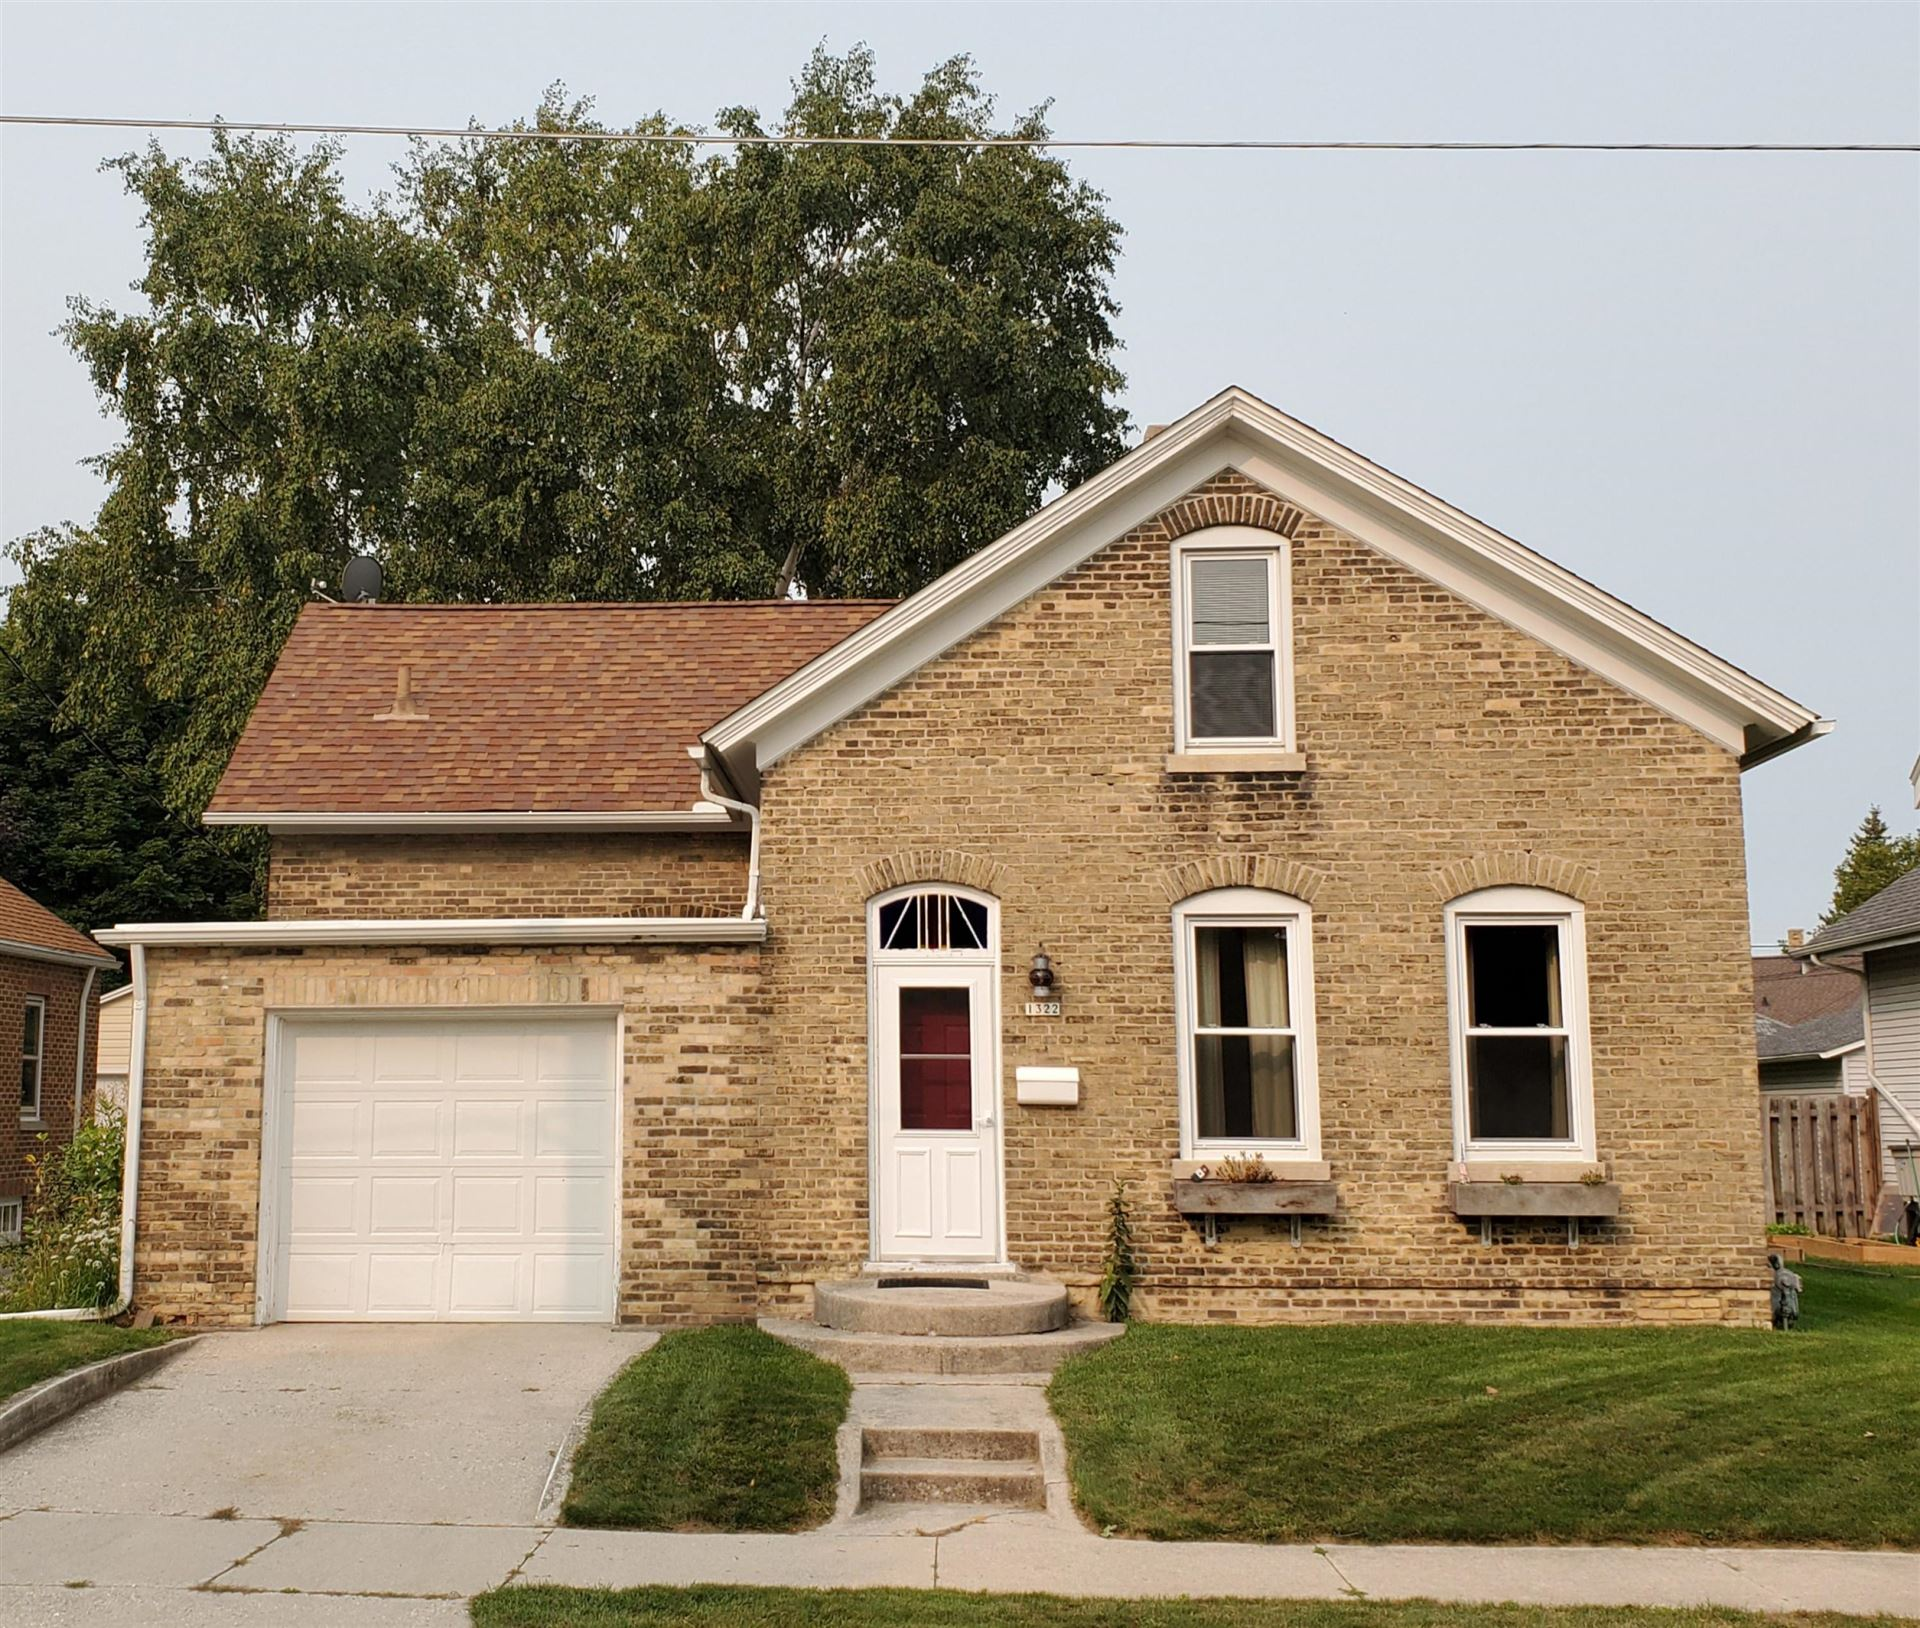 1322 S 16th St, Manitowoc, WI 54220 - #: 1709816